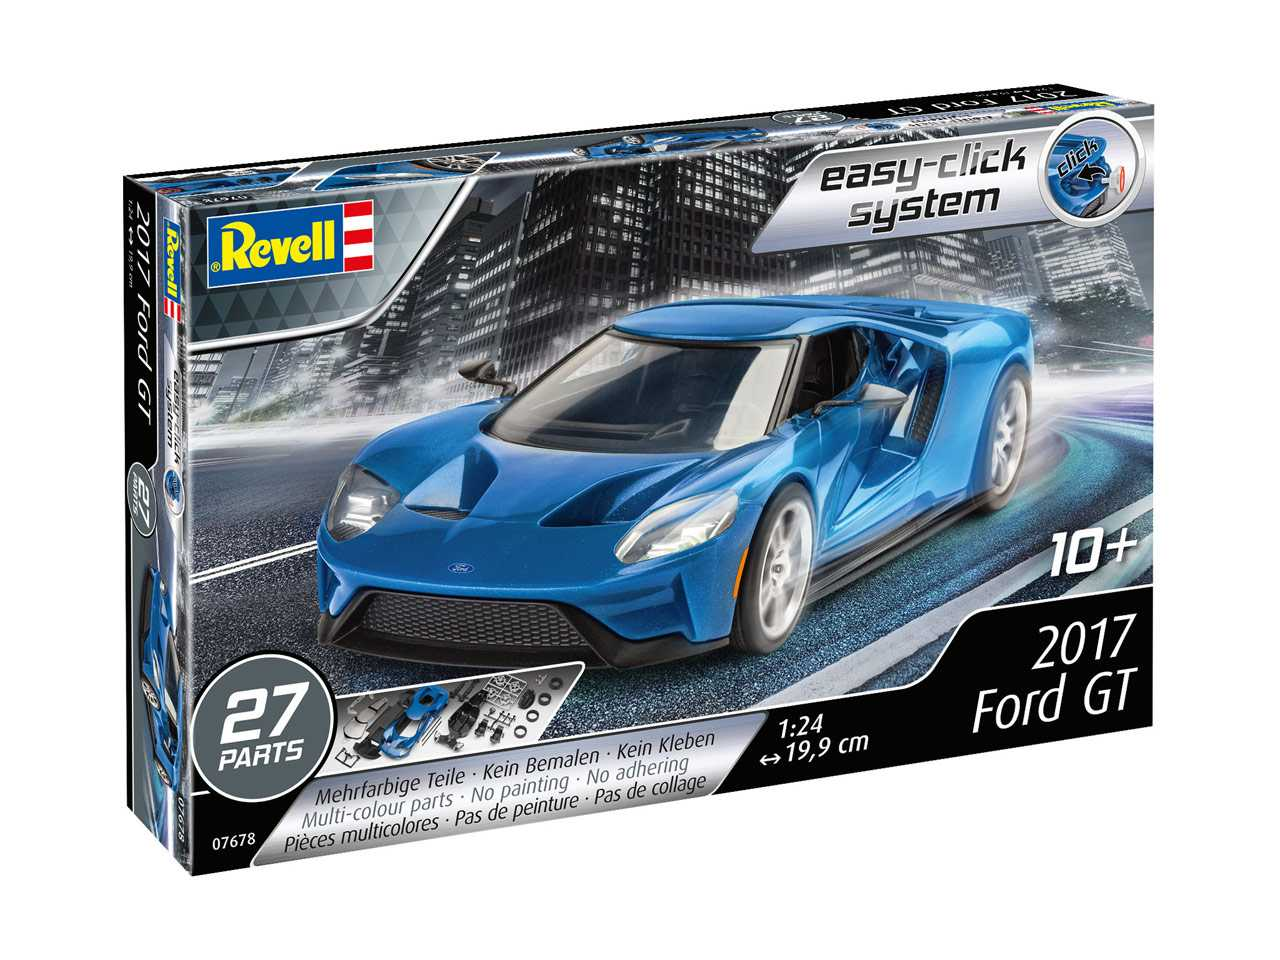 1:24 Ford GT 2017 (Easy Click)